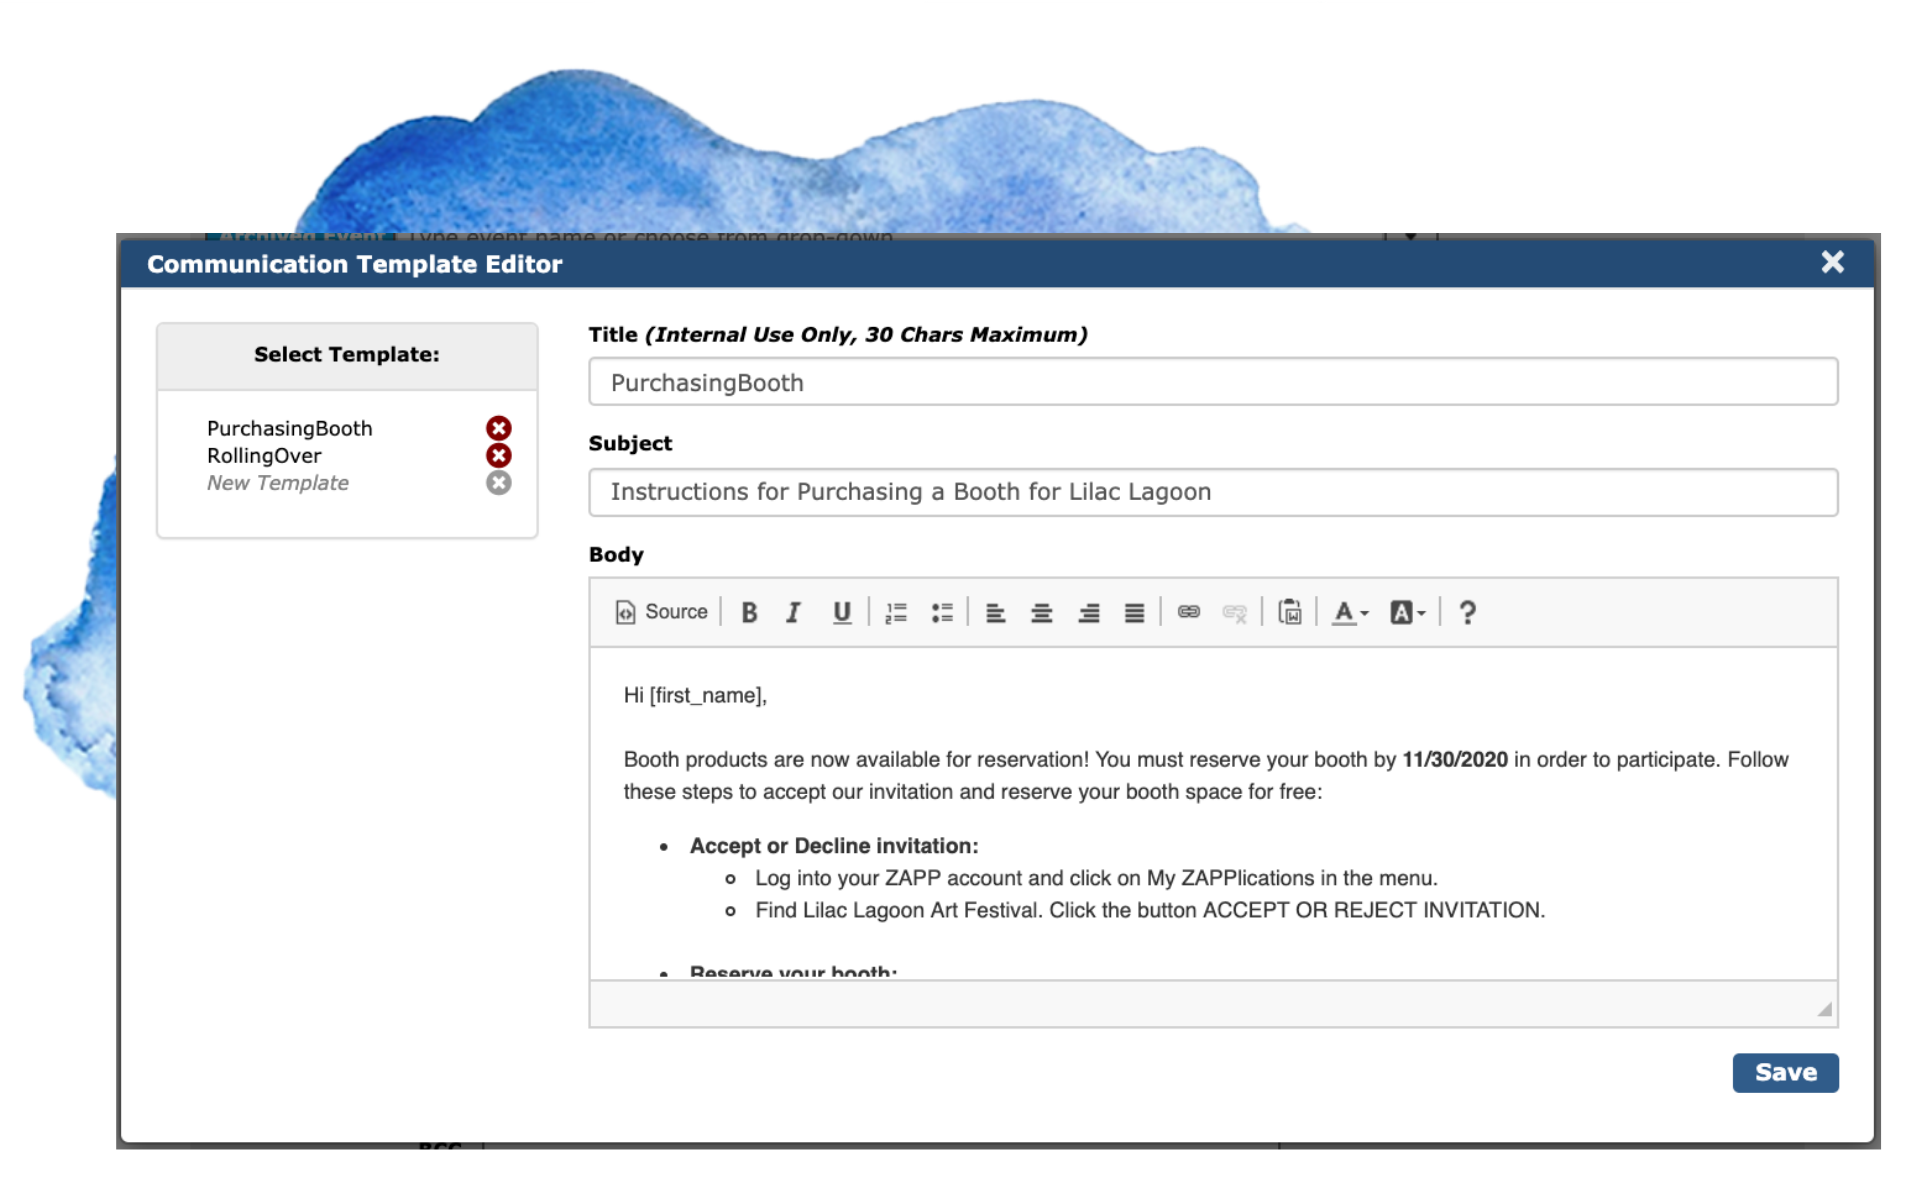 Image of the Communication Template Editor